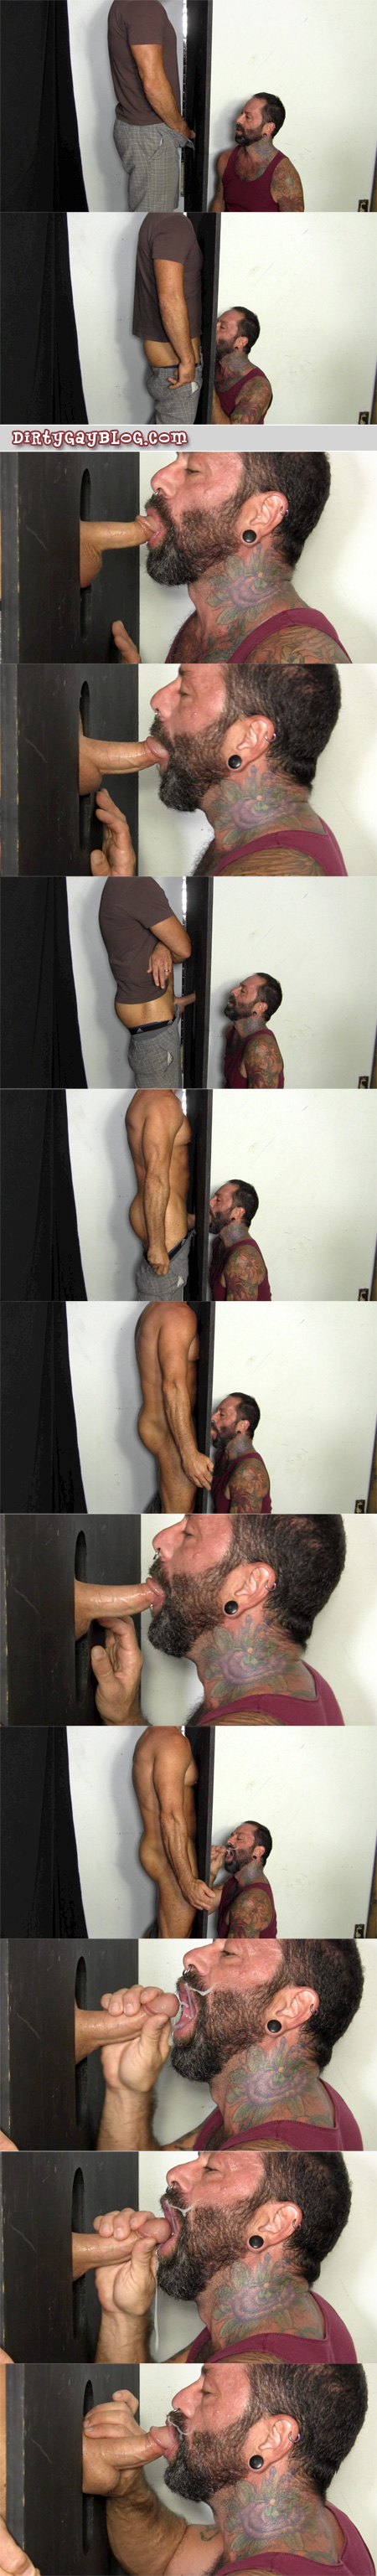 Muscular married man gets blown to completion and has a huge loud cumshot at an anonymous gloryhole.